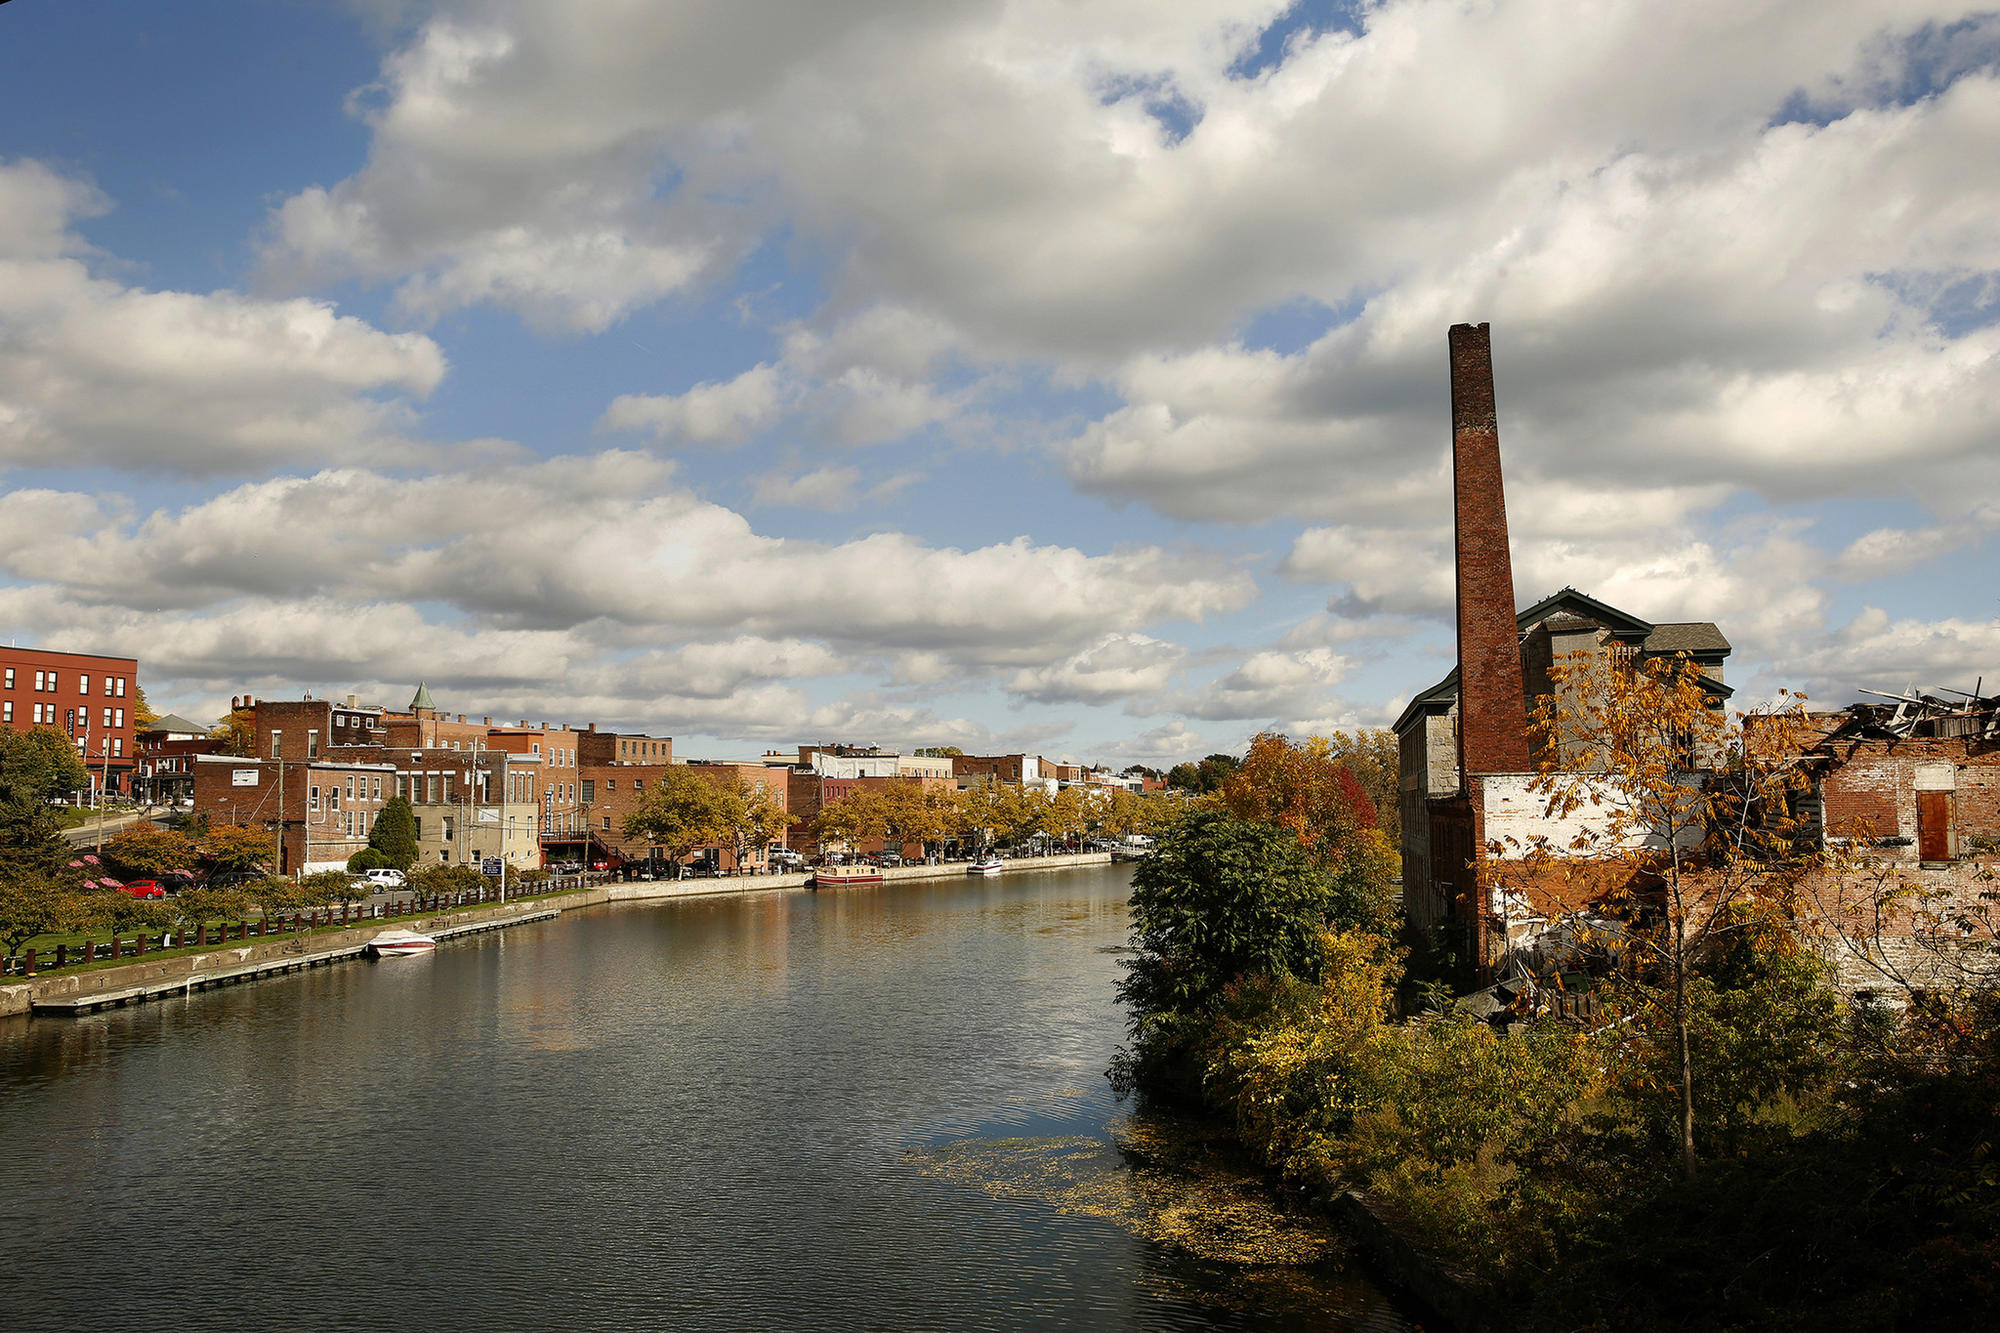 The Cayuga-Seneca Canal is part of the Erie Canalway, seen from Seneca Falls. The historic mill, right, will be the new site of the National Women's Hall of Fame. (Carolyn Cole / Los Angeles Times)